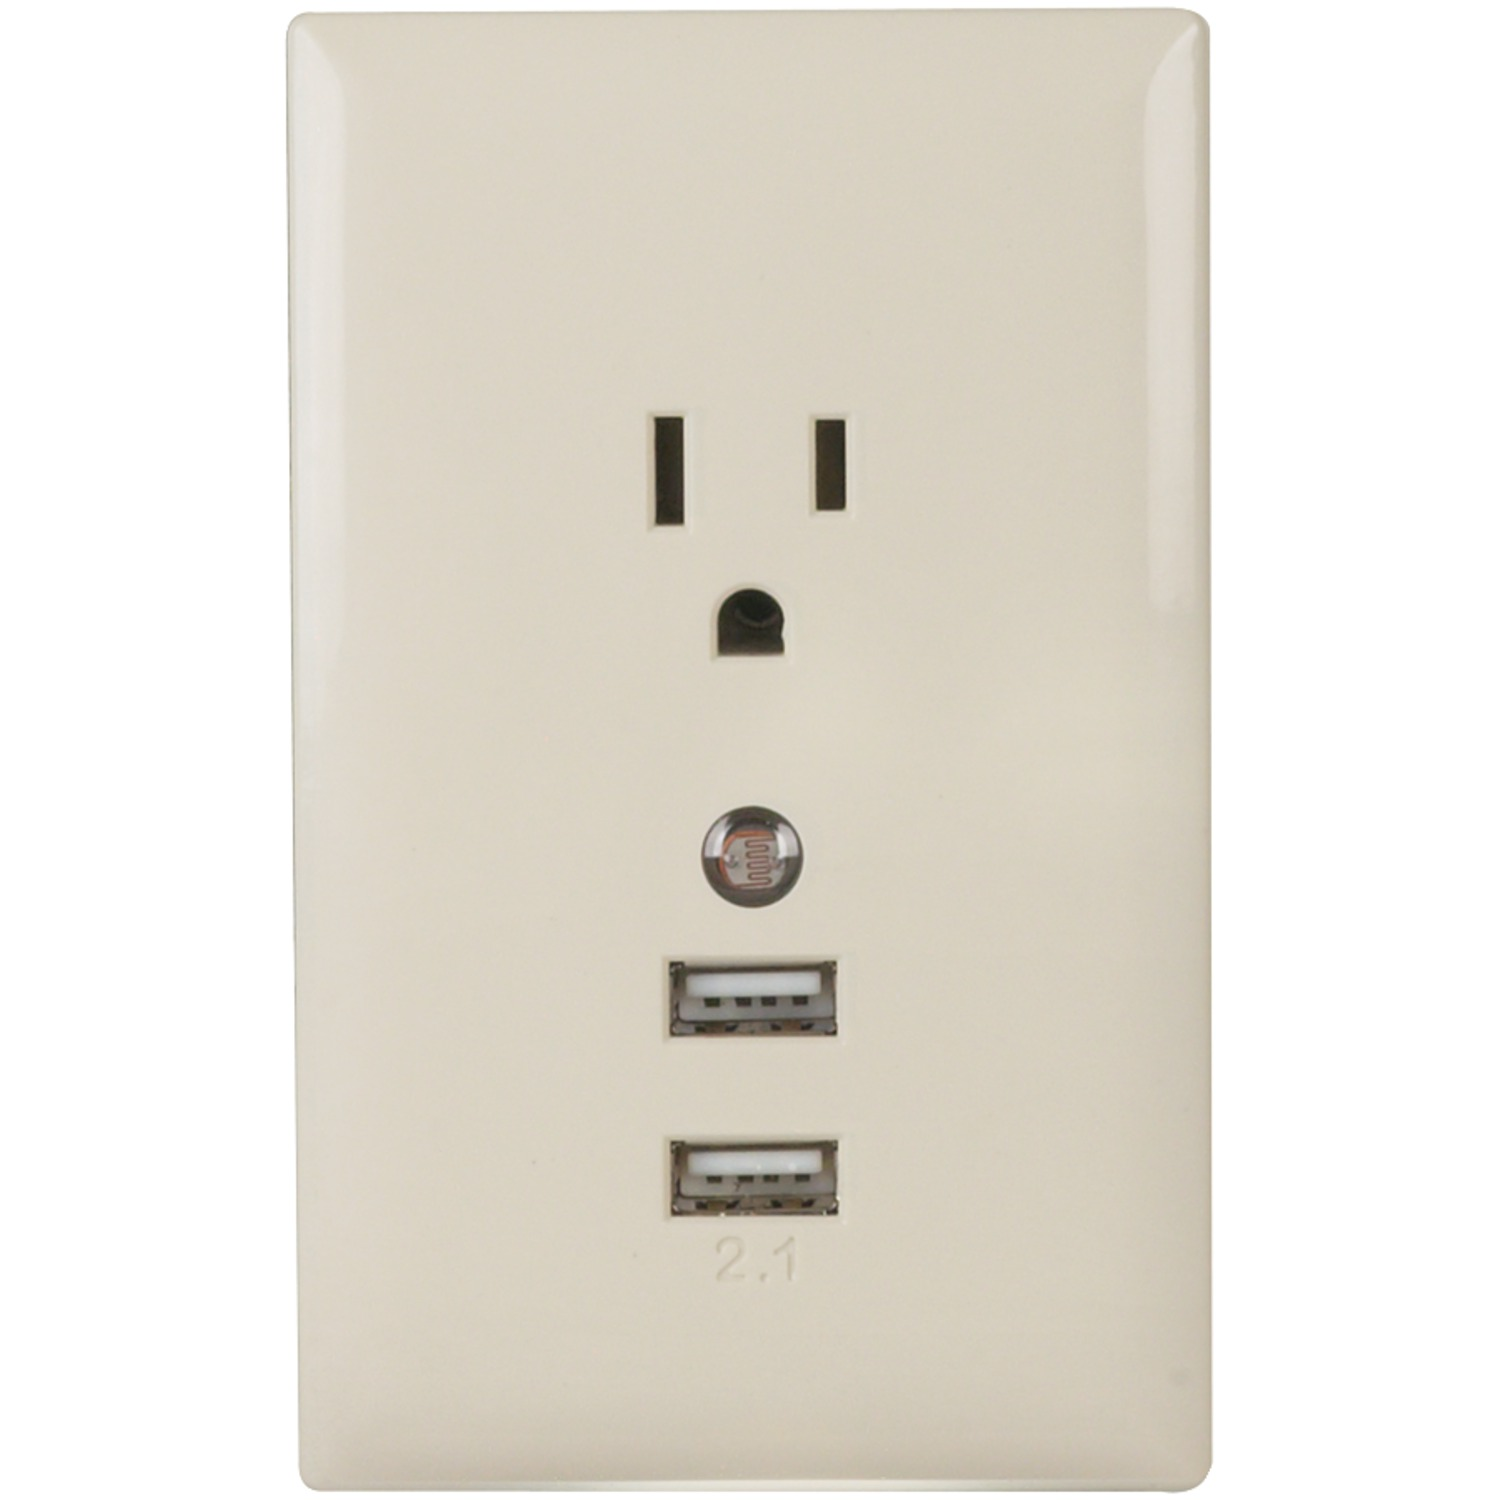 Wall Lamp With Usb Charger : RCA WP2UNLA Wall Plate USB Charger with Night Light (Almond)